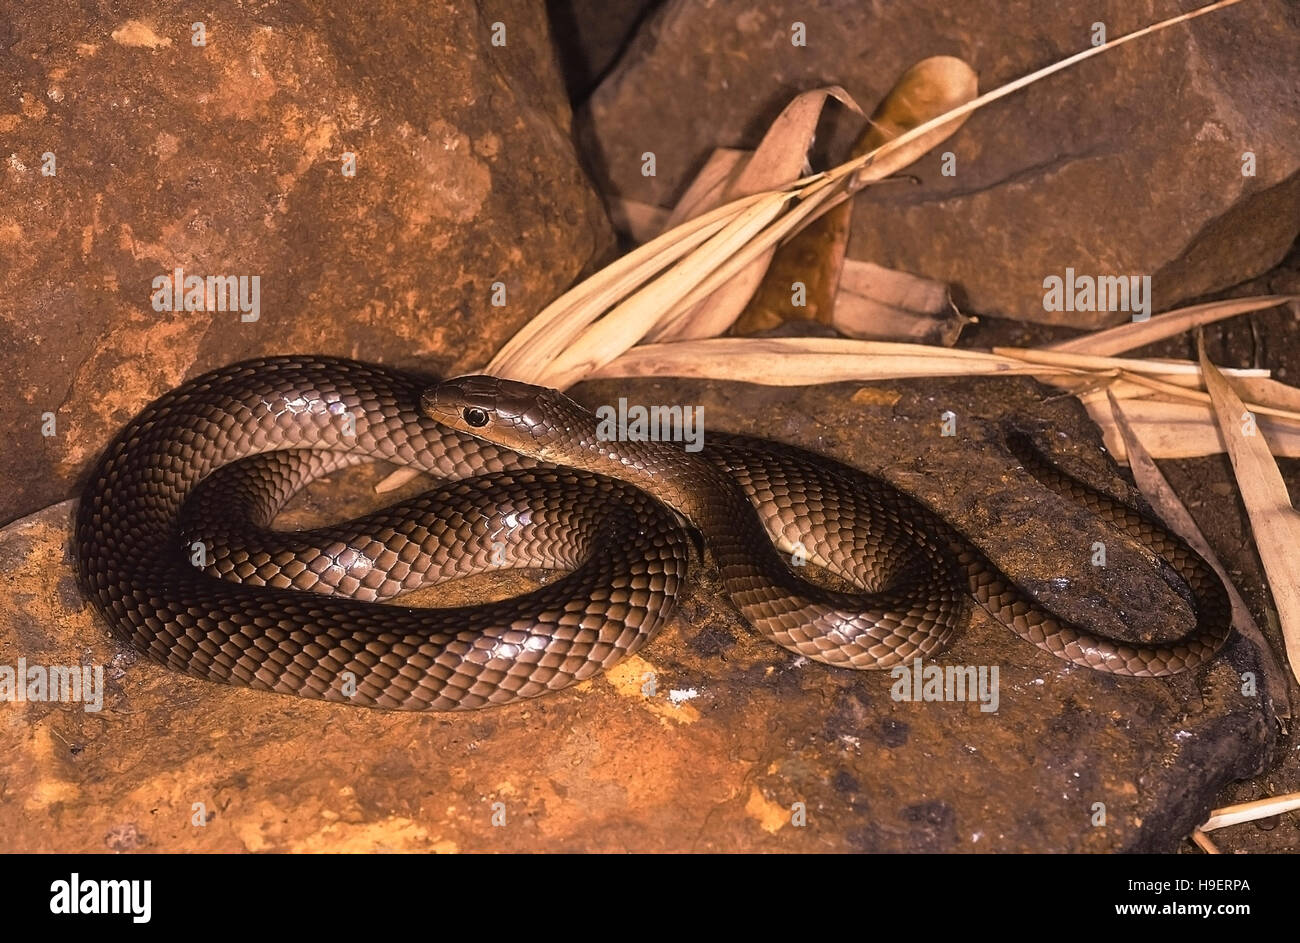 Psammophis longifrons STOUT SAND SNAKE. FULL BODY. VERY RARE. Harmless. Endemic to India. Photograph of an individual - Stock Image